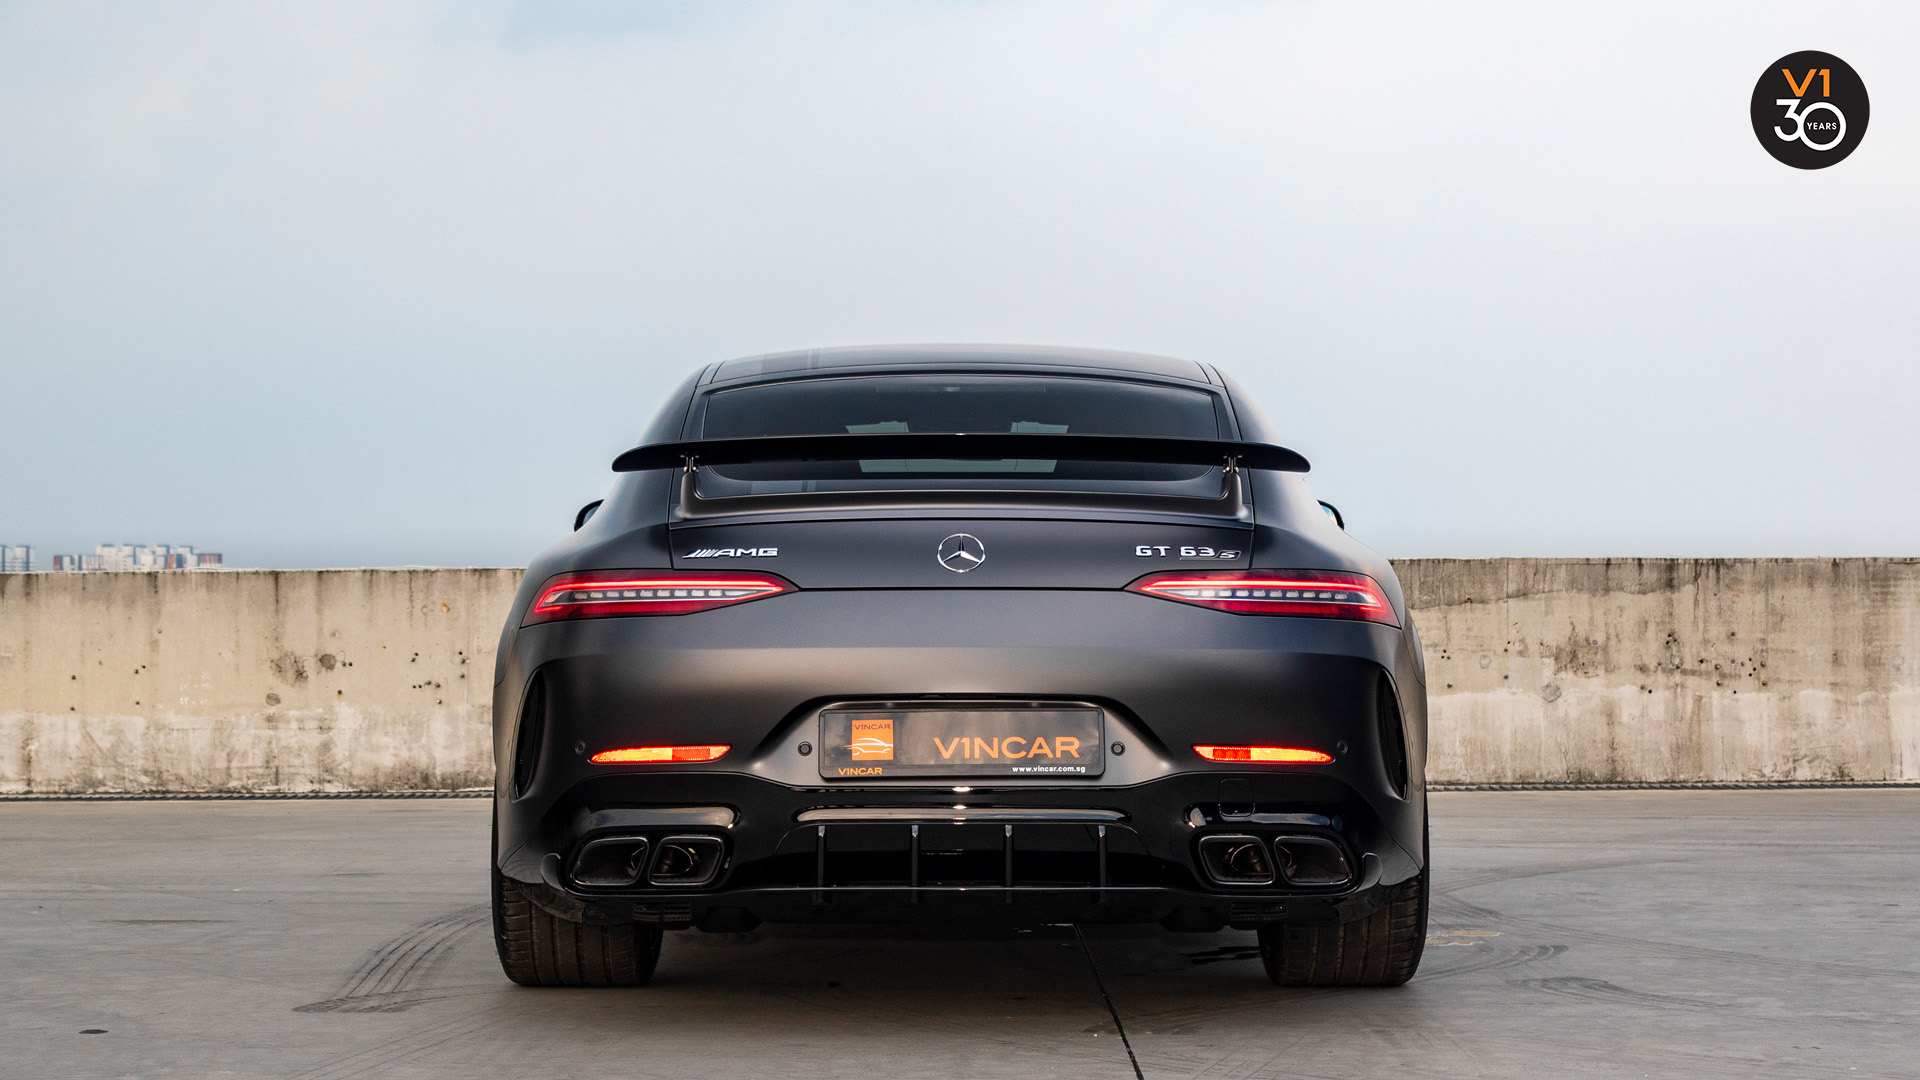 Mercedes GT63 S 4Matic+ Edition 1 AMG - Rear Direct